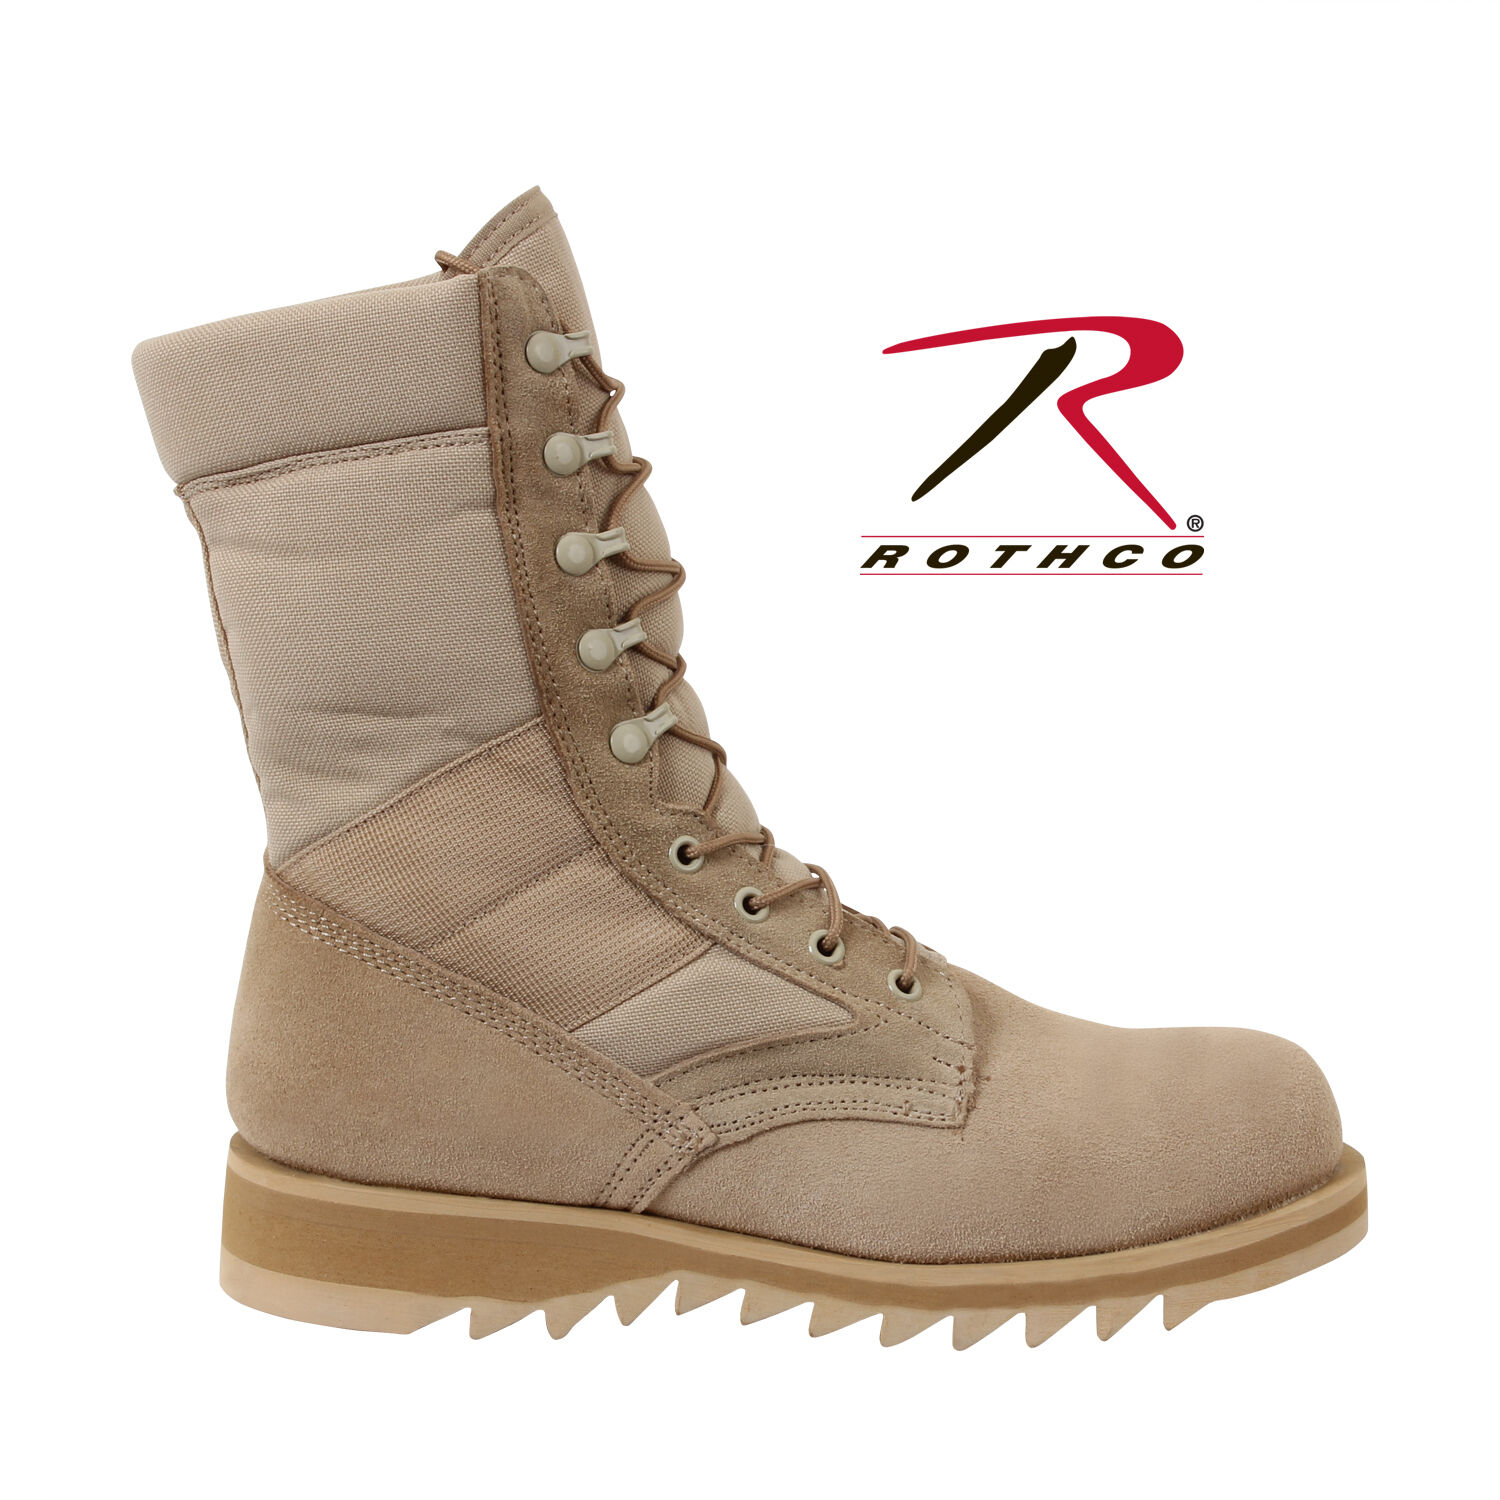 Rothco 5058 G.I. Type Ripple Sole Desert Tan Jungle Stiefel